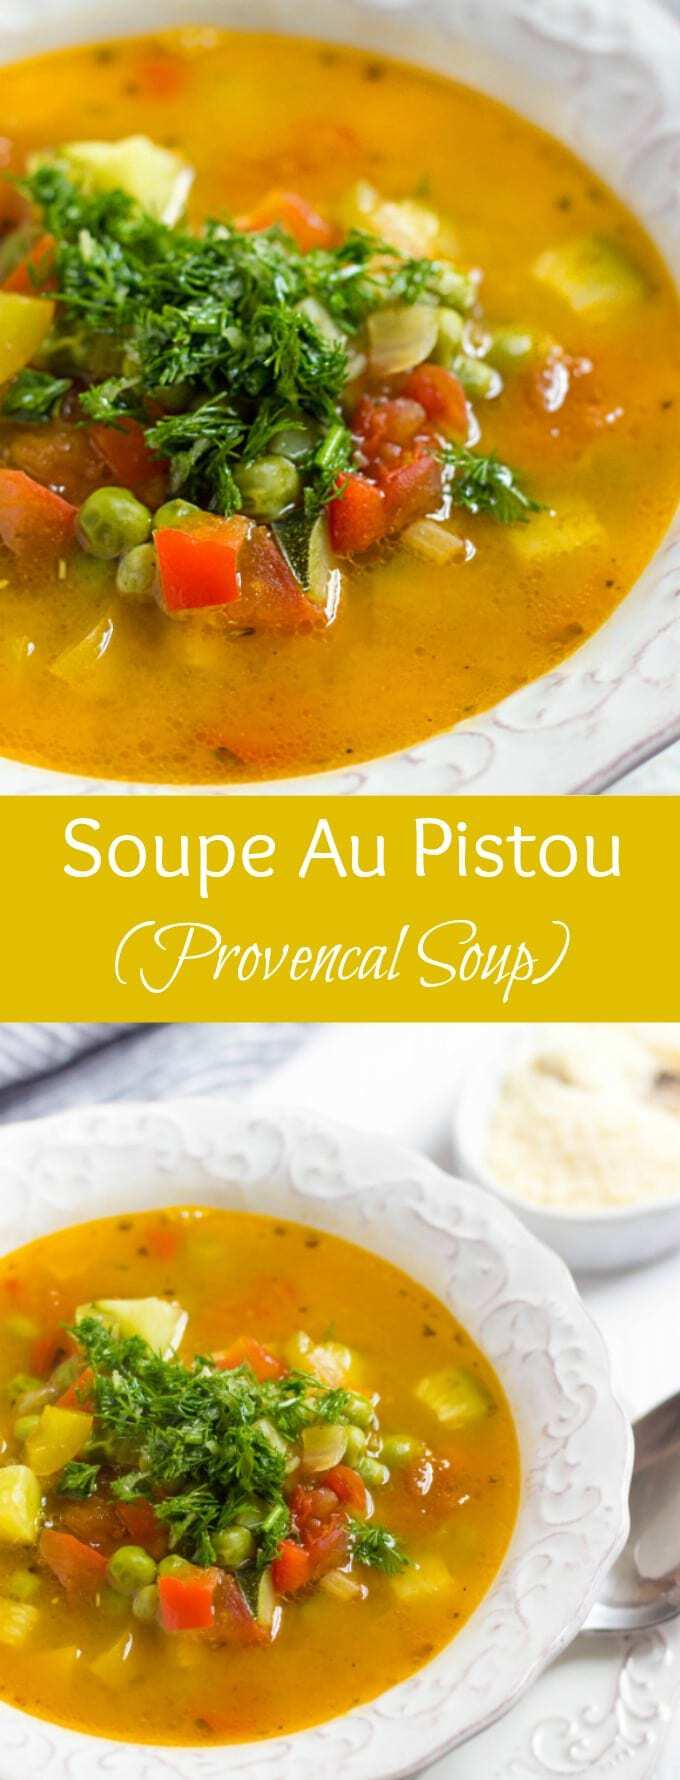 Learn how to make Soupe Au Pistou - French classic vegetable soup. This Provencal soup is bursting with flavor and so easy to make.